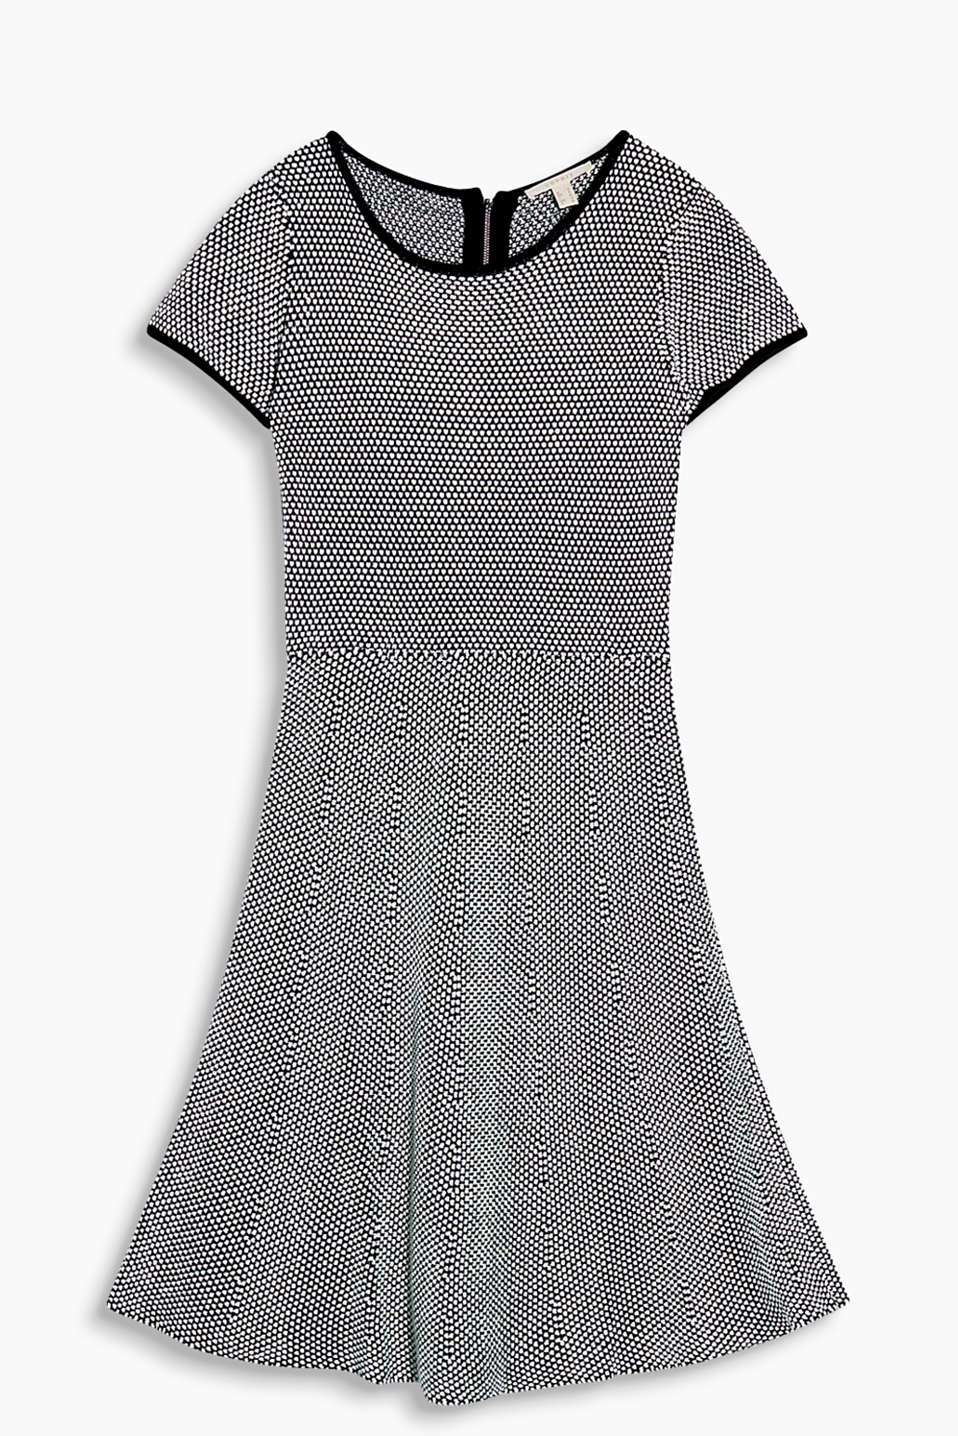 Swirling dress with retro charm, in a soft textured knit, blended cotton